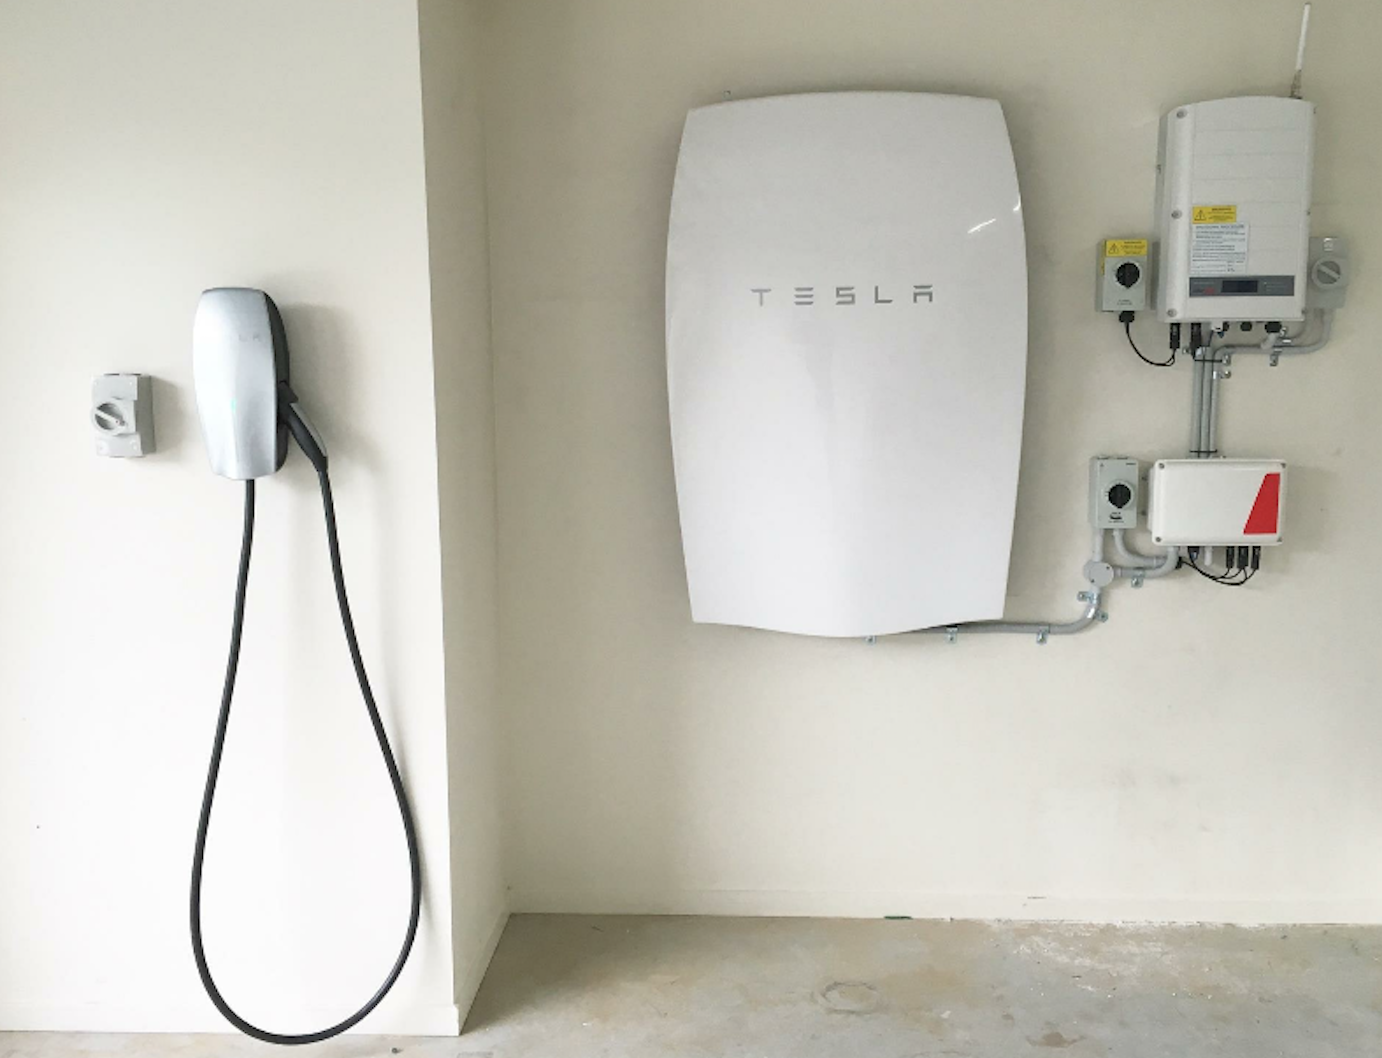 Gmp And Tesla Batteries 171 Green Energy Times